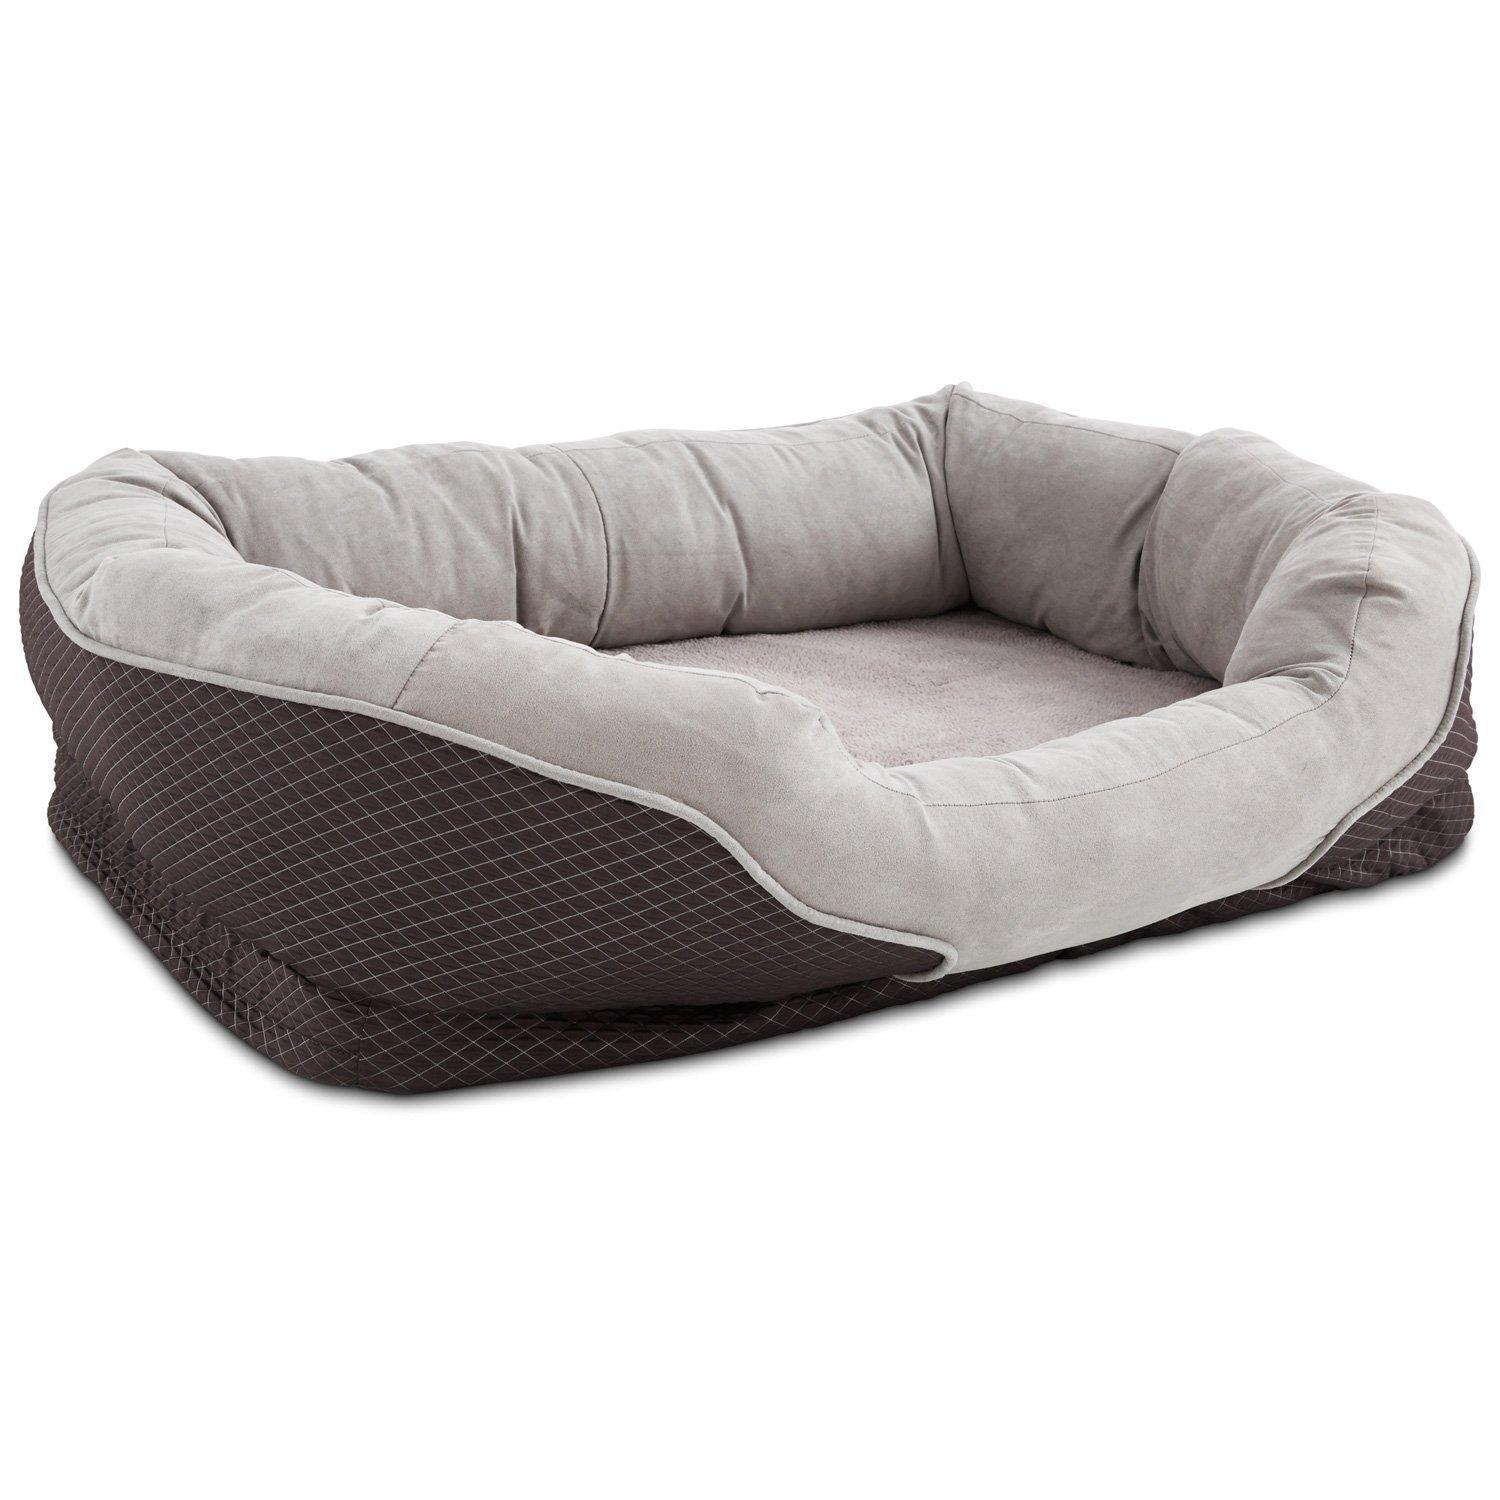 Sofas Center : Fascinating Large Dog Sofa Pictures Concept Sofas With Regard To Dog Sofas And Chairs (Image 14 of 20)